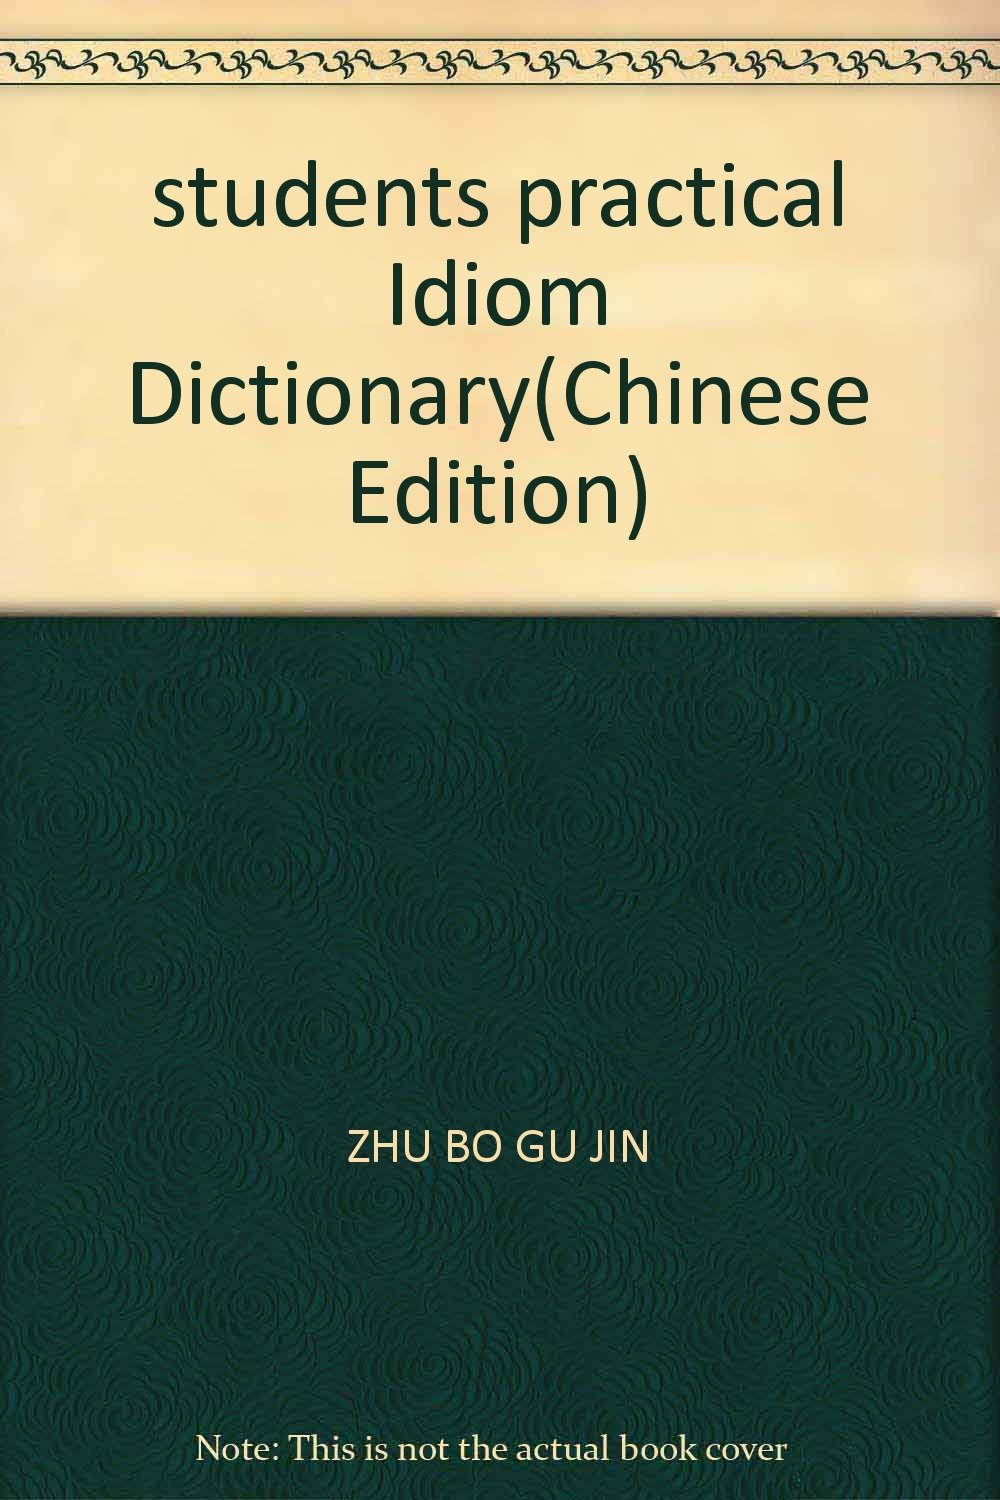 Download students practical Idiom Dictionary(Chinese Edition) PDF